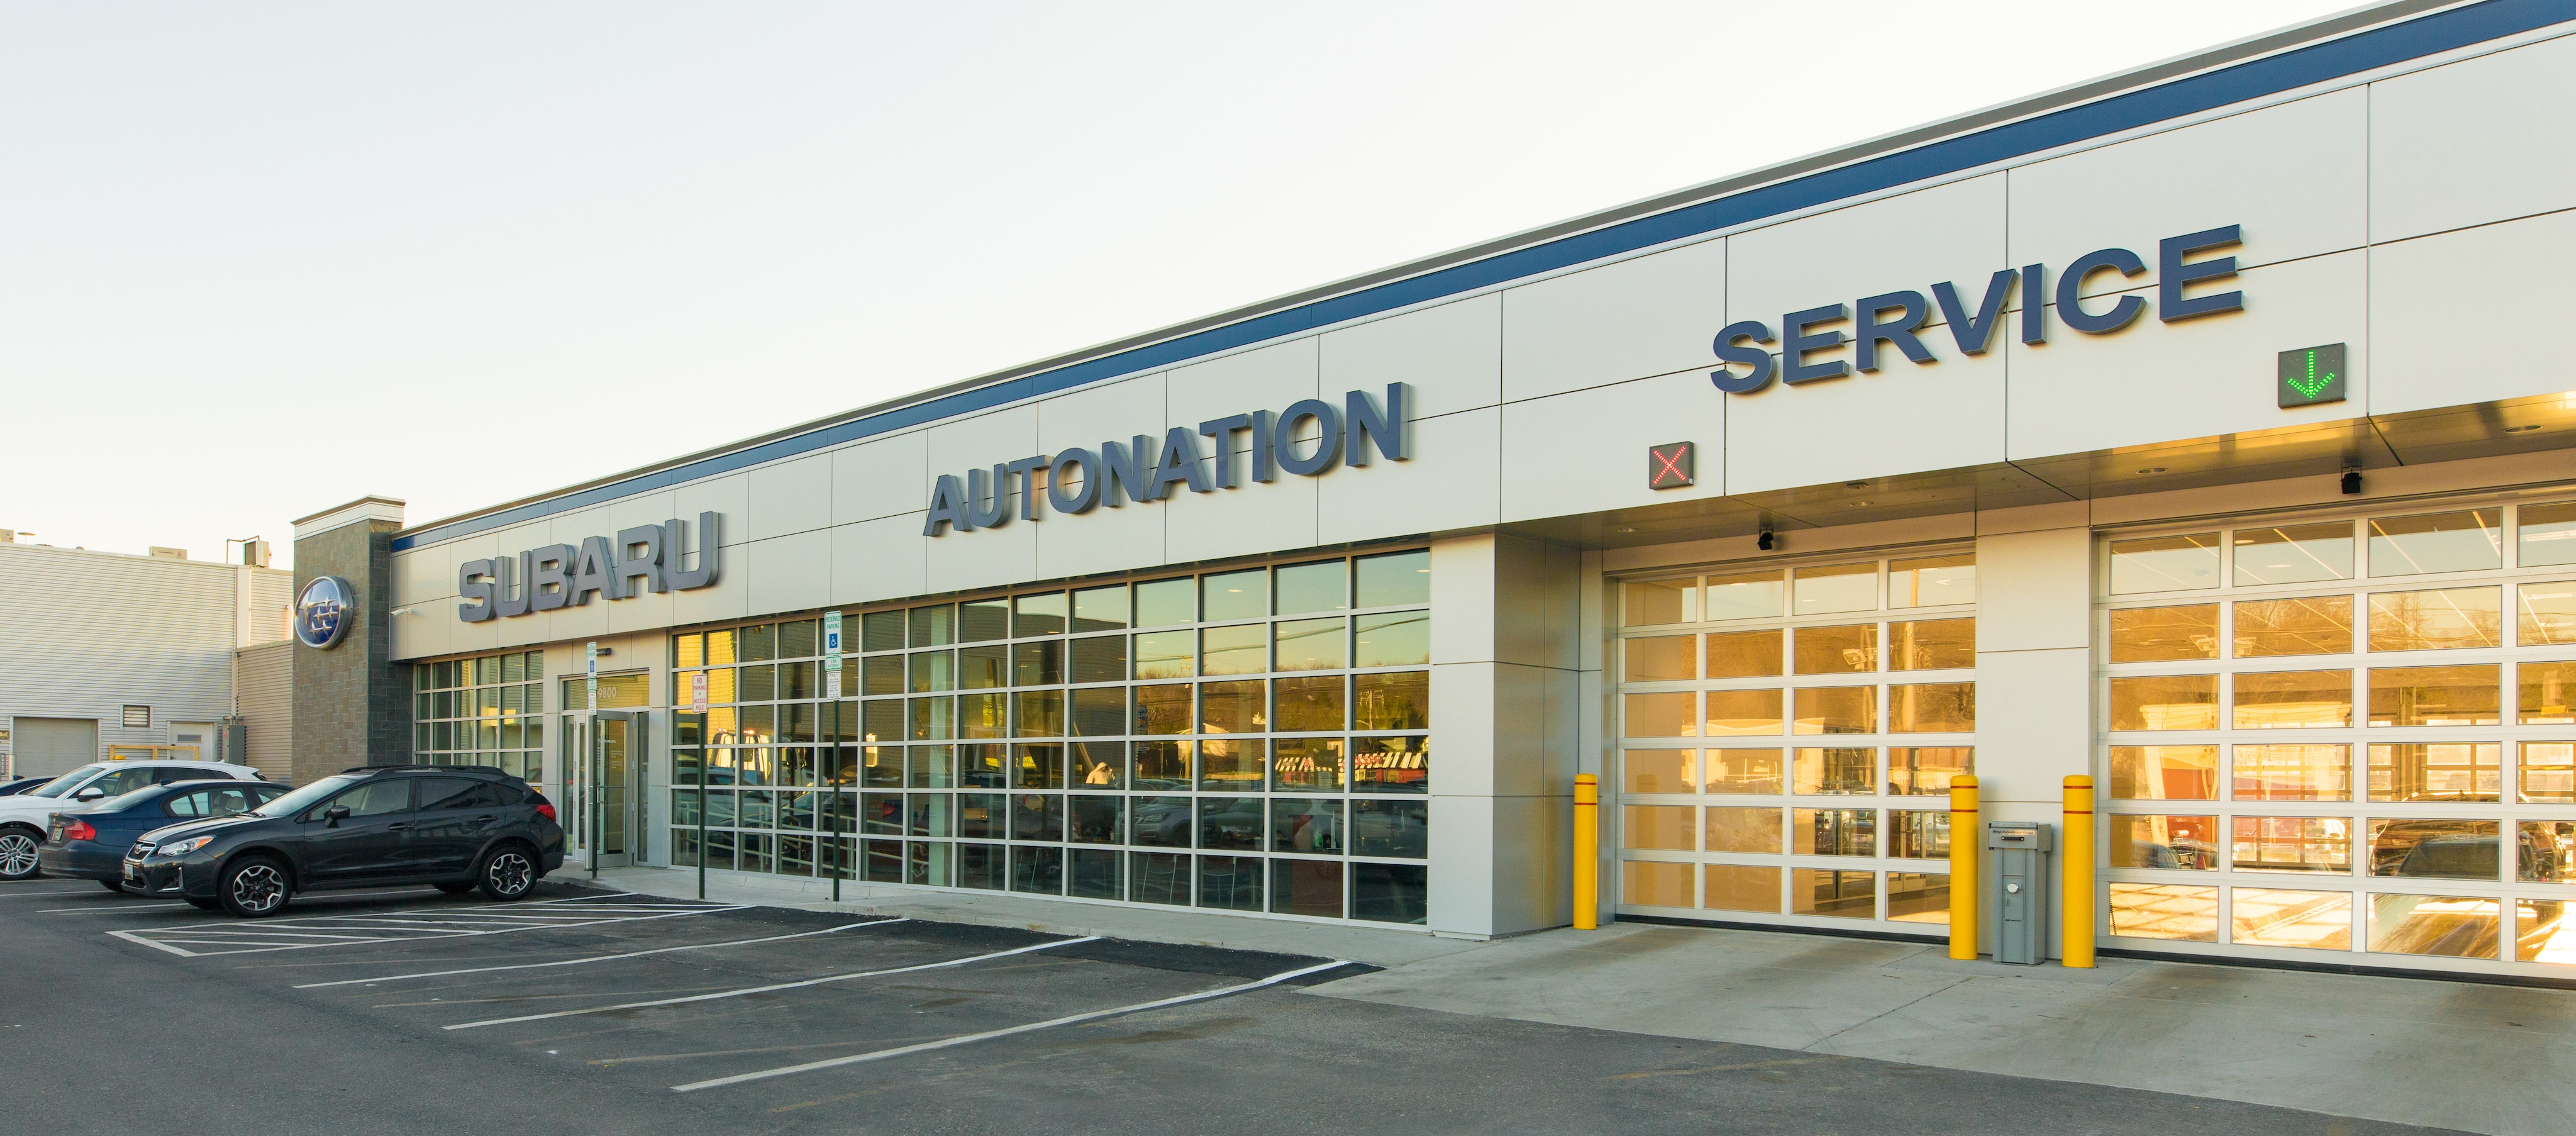 AutoNation Subaru Hunt Valley Service Center Exterior